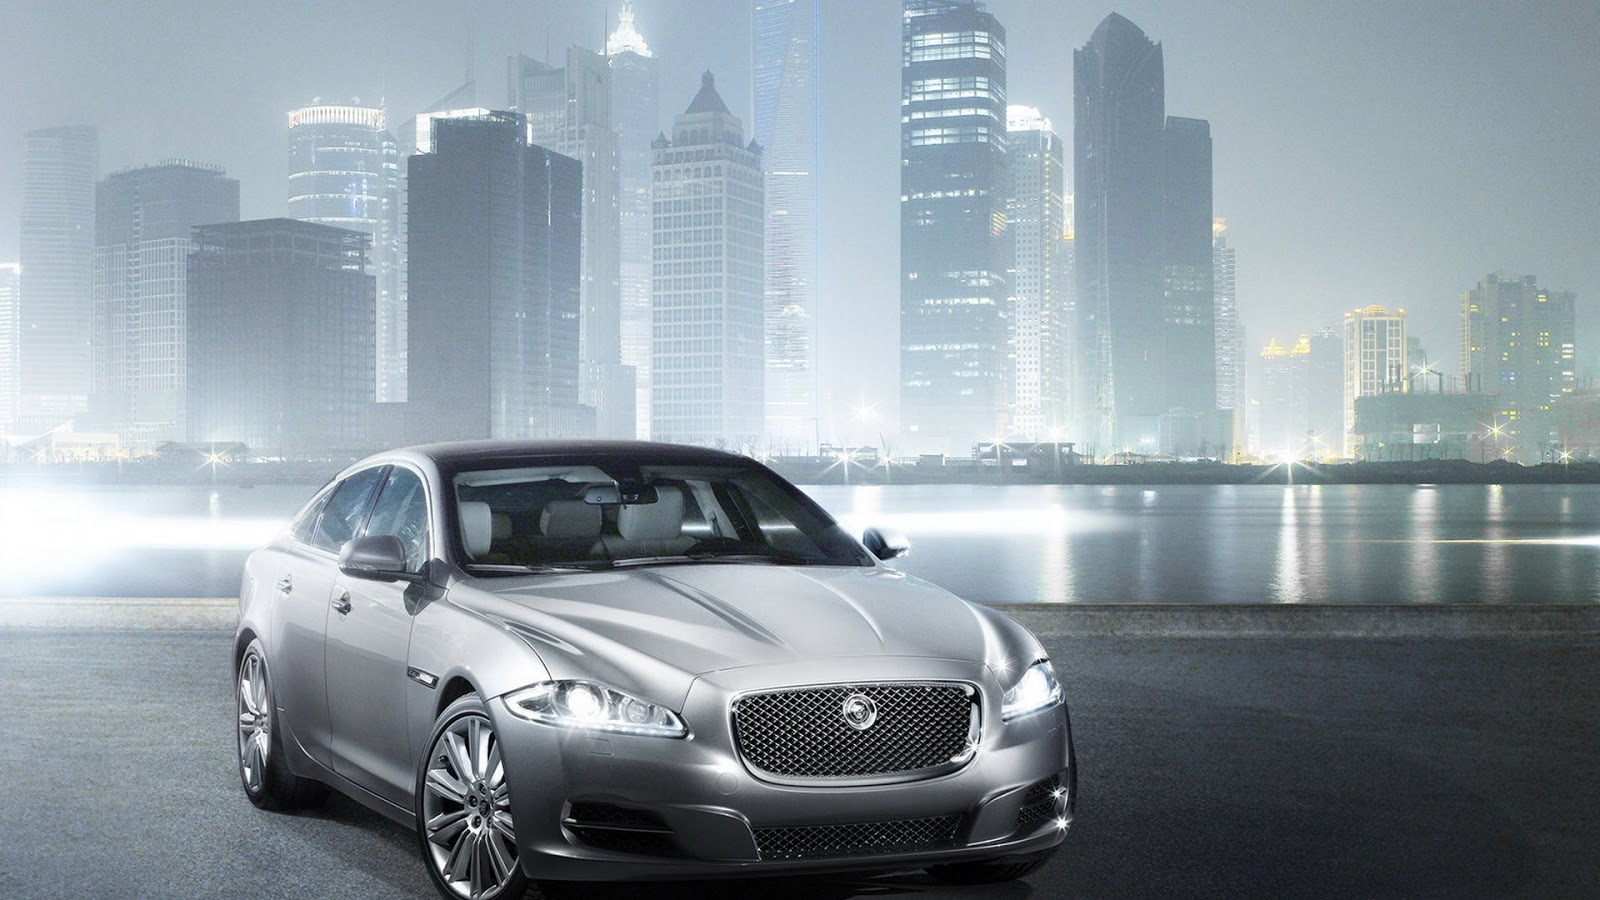 Hd Car Wallpapers,car Image,sports Car Wallpapers,car Wallpaper,Jaguar Car